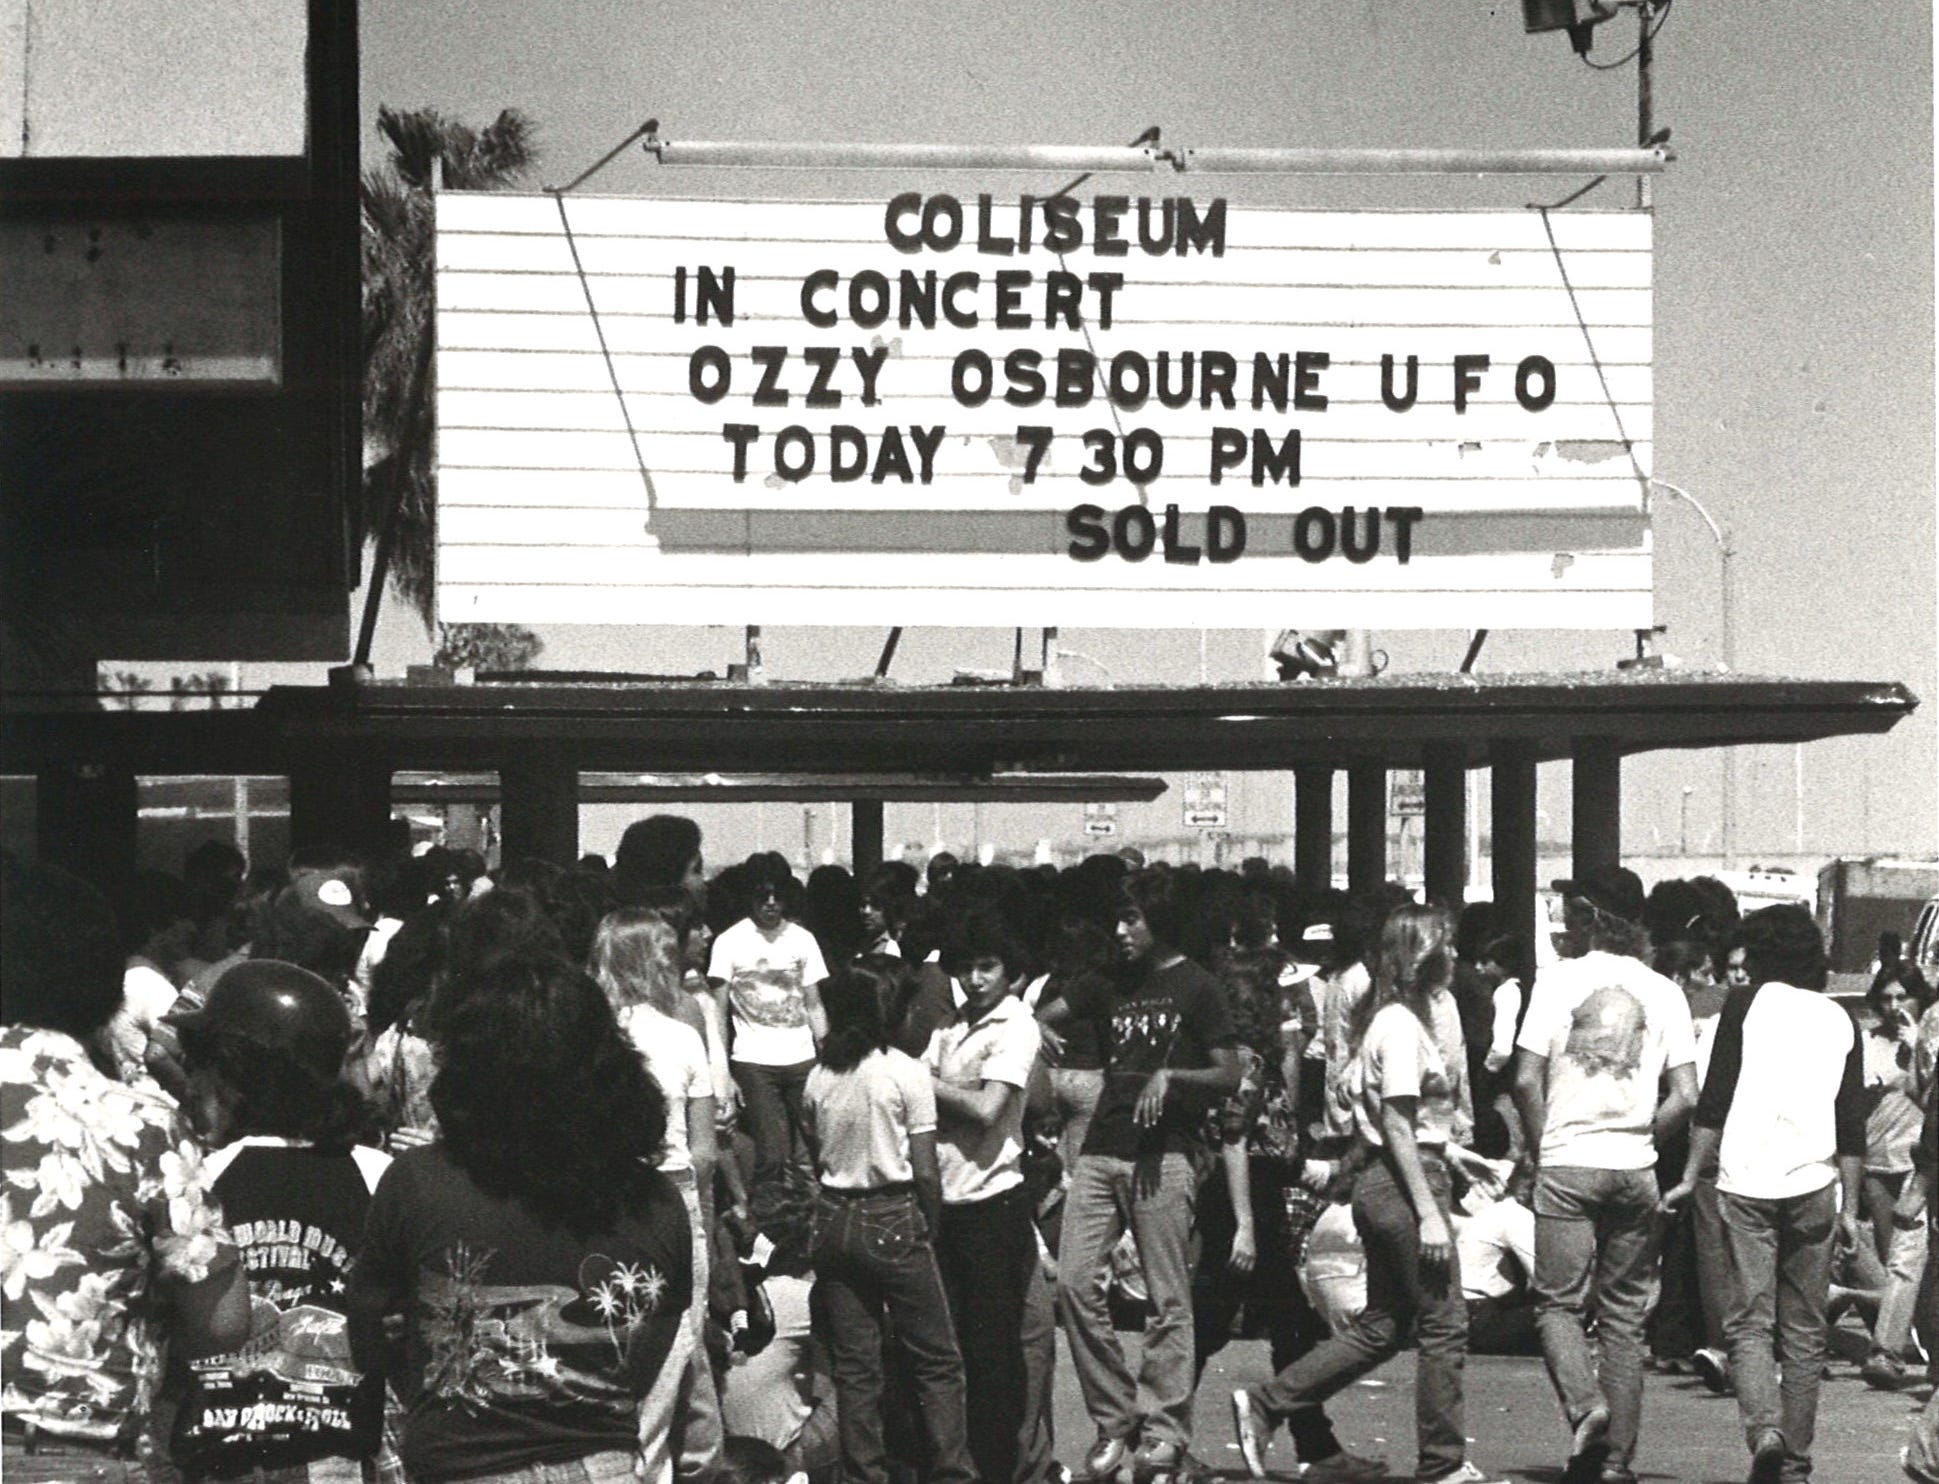 Hundreds of people wait in line for the Ozzy Osbourne concert at Memorial Coliseum in Corpus Christi in February 1982.